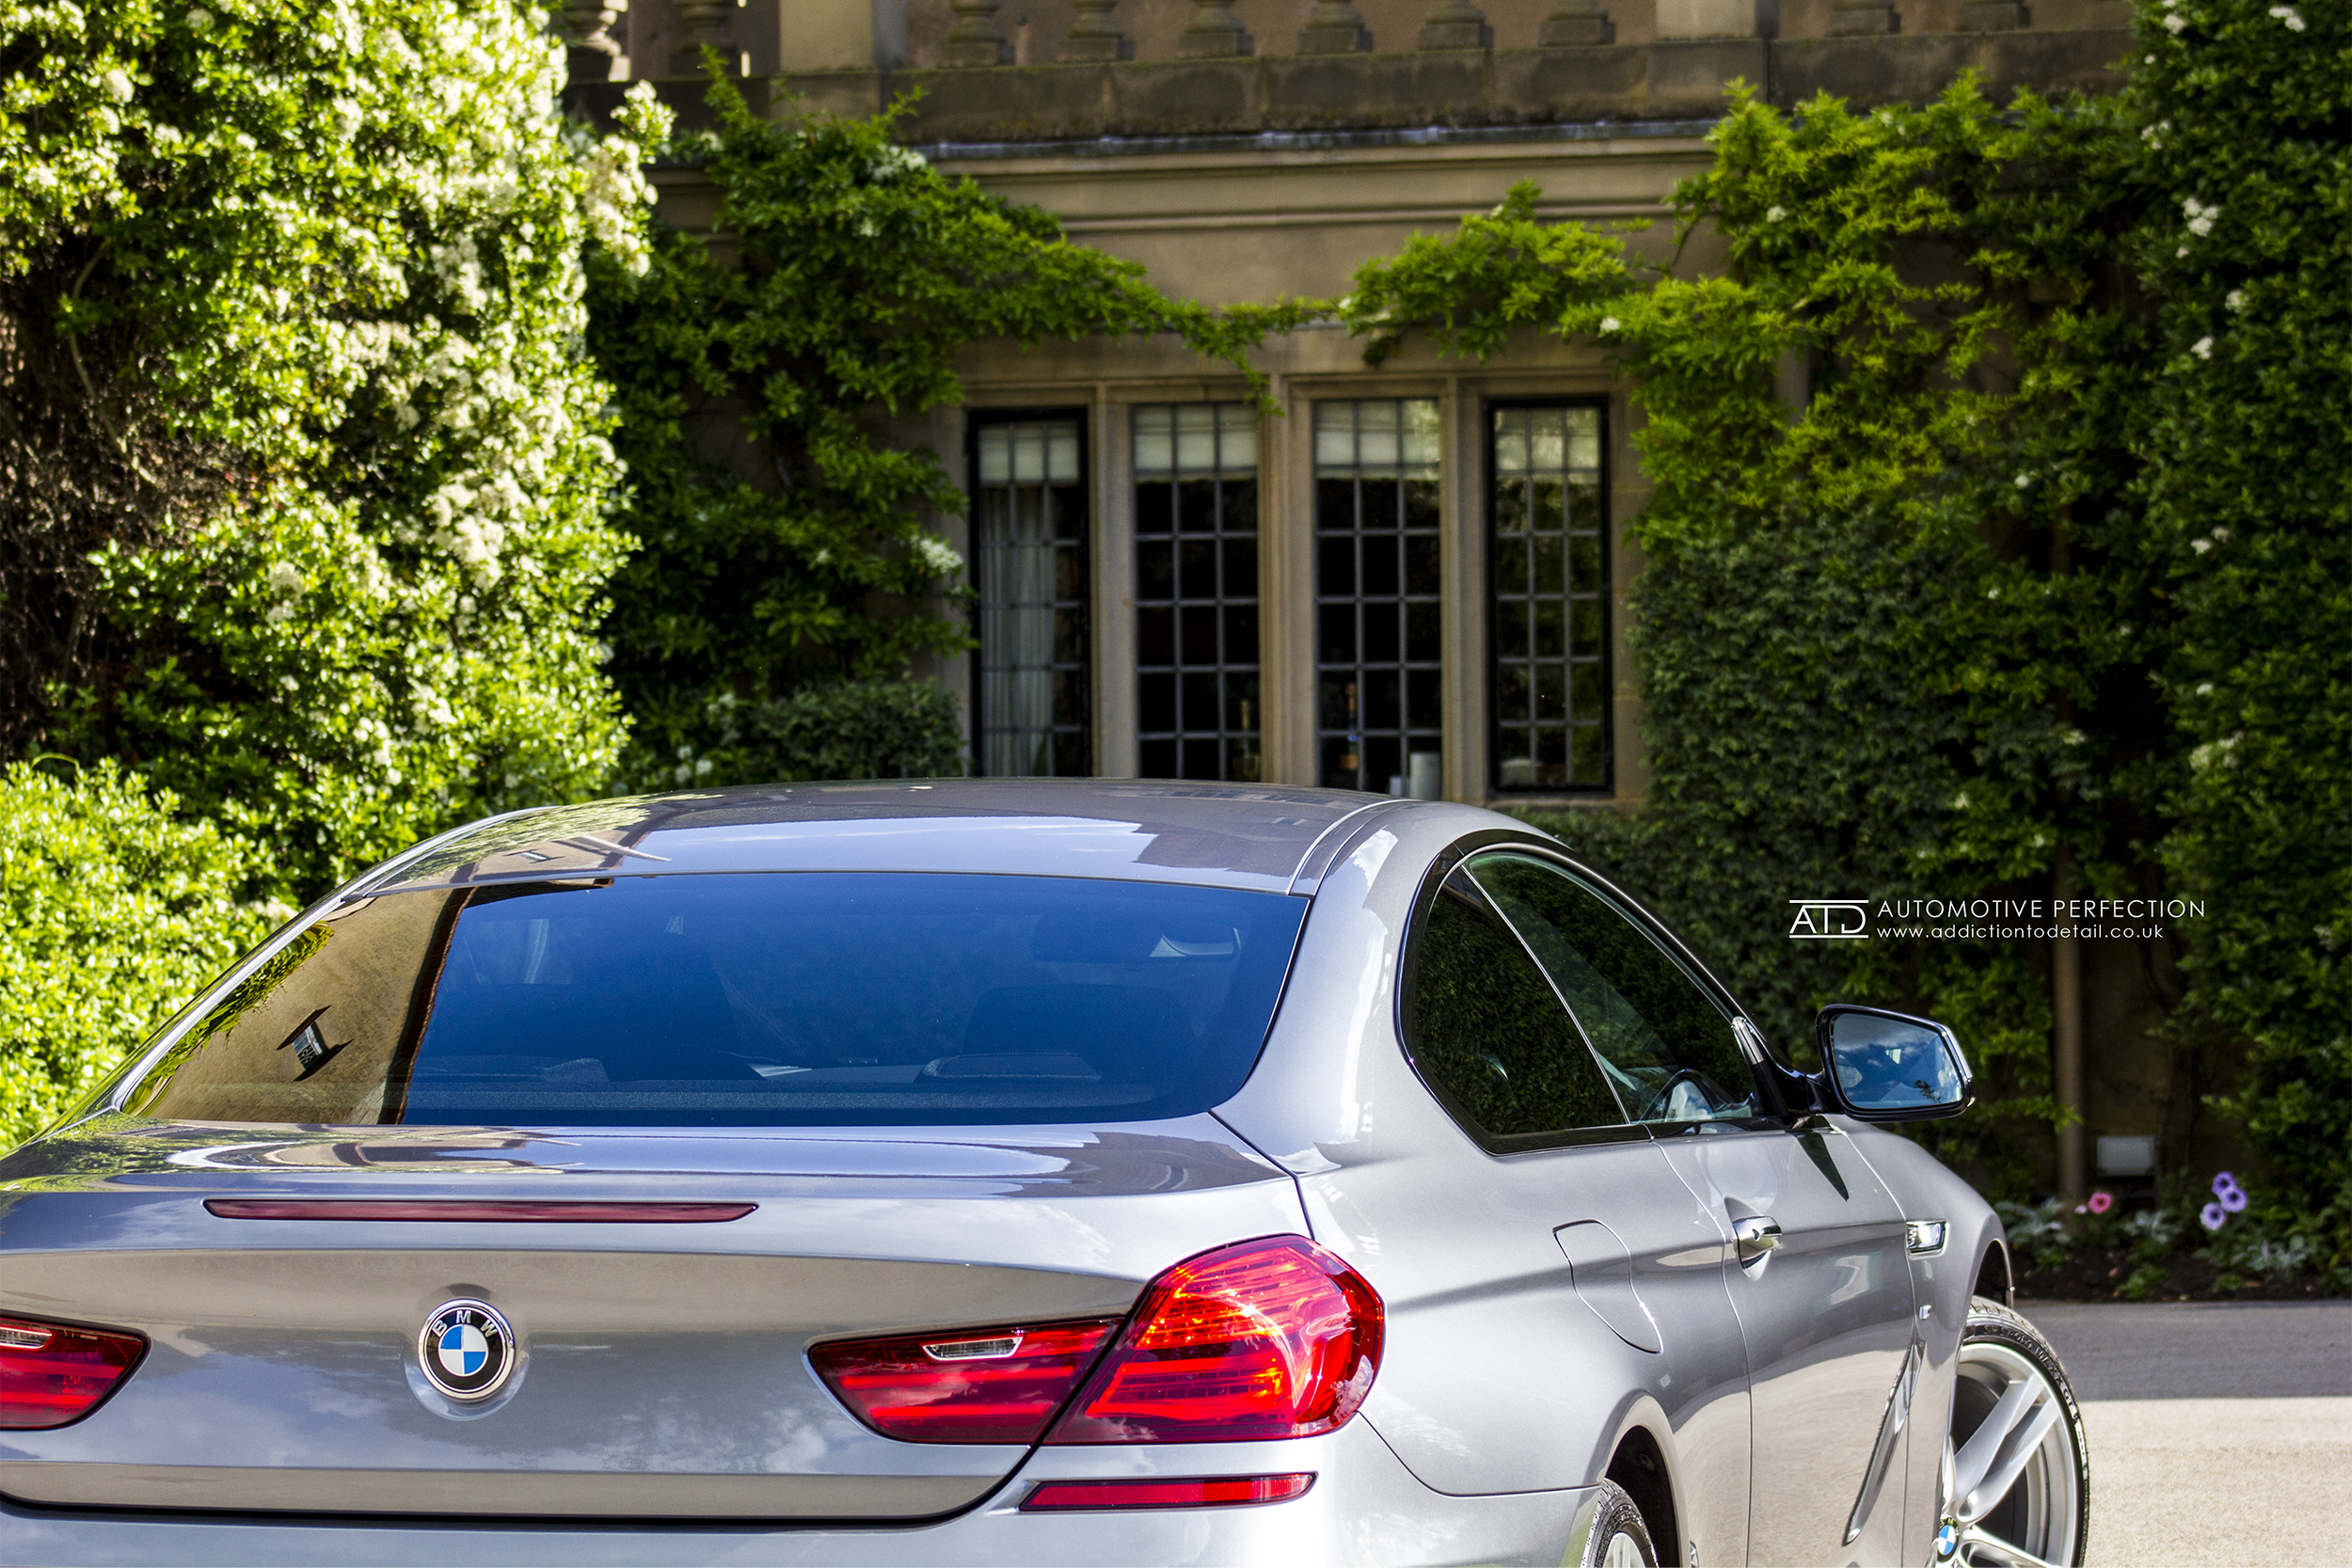 640D_Coupe_Photoshoot__0024_Image_010.jpg